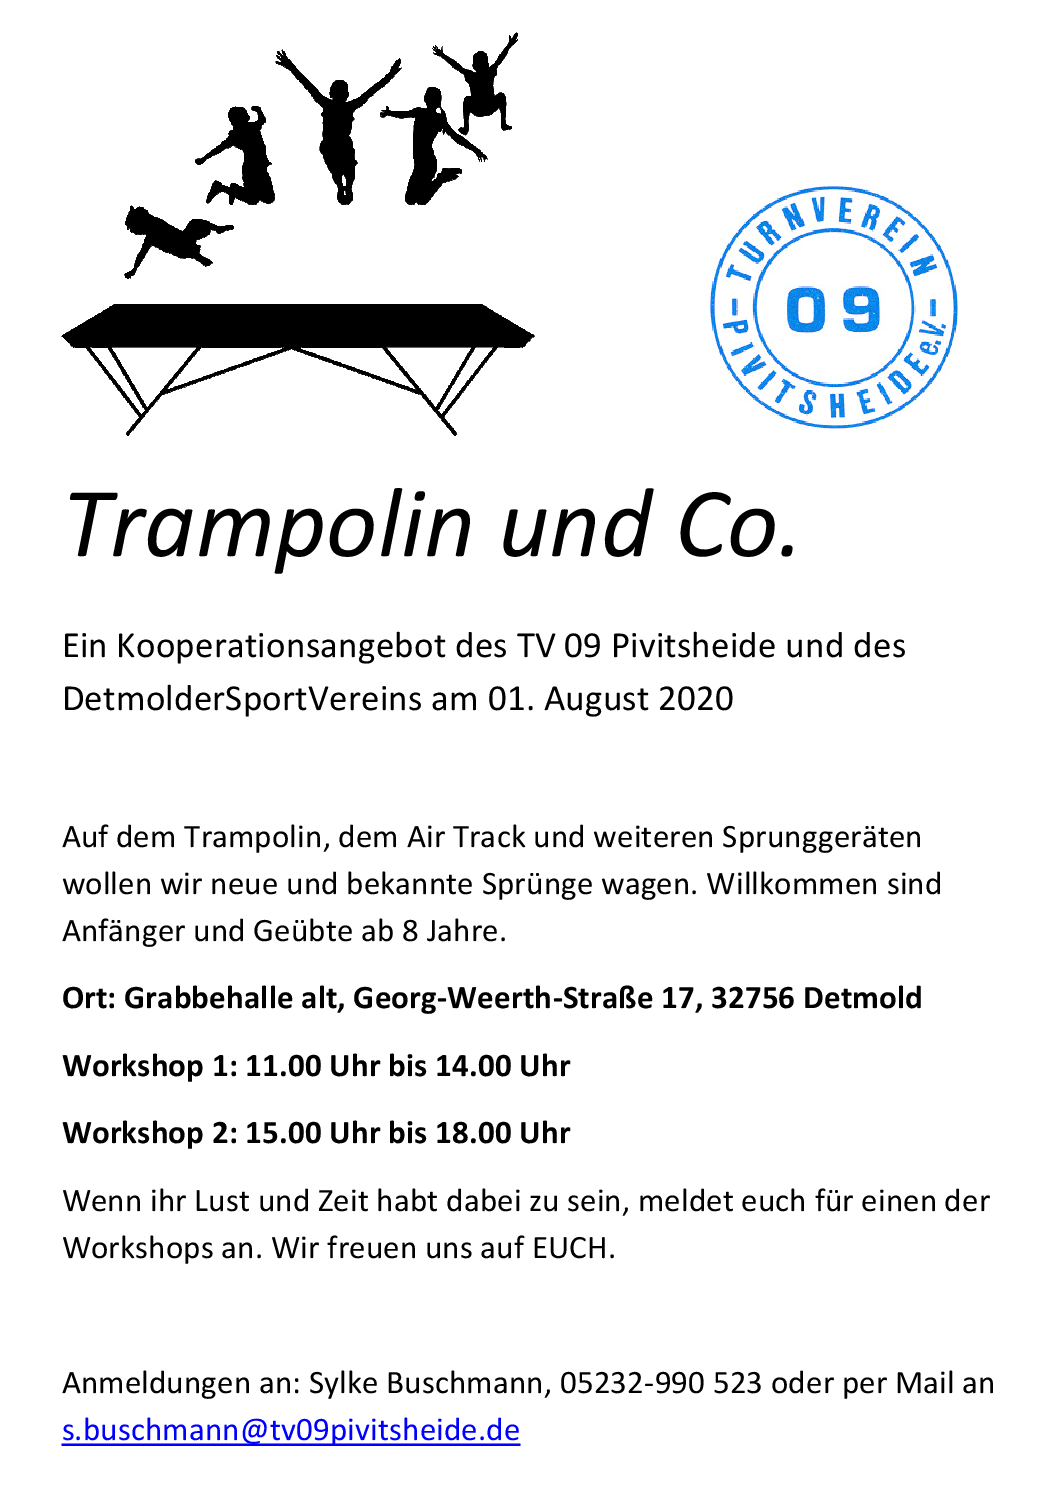 Trampolin und Co. Trampolinevent am 01.08.2020